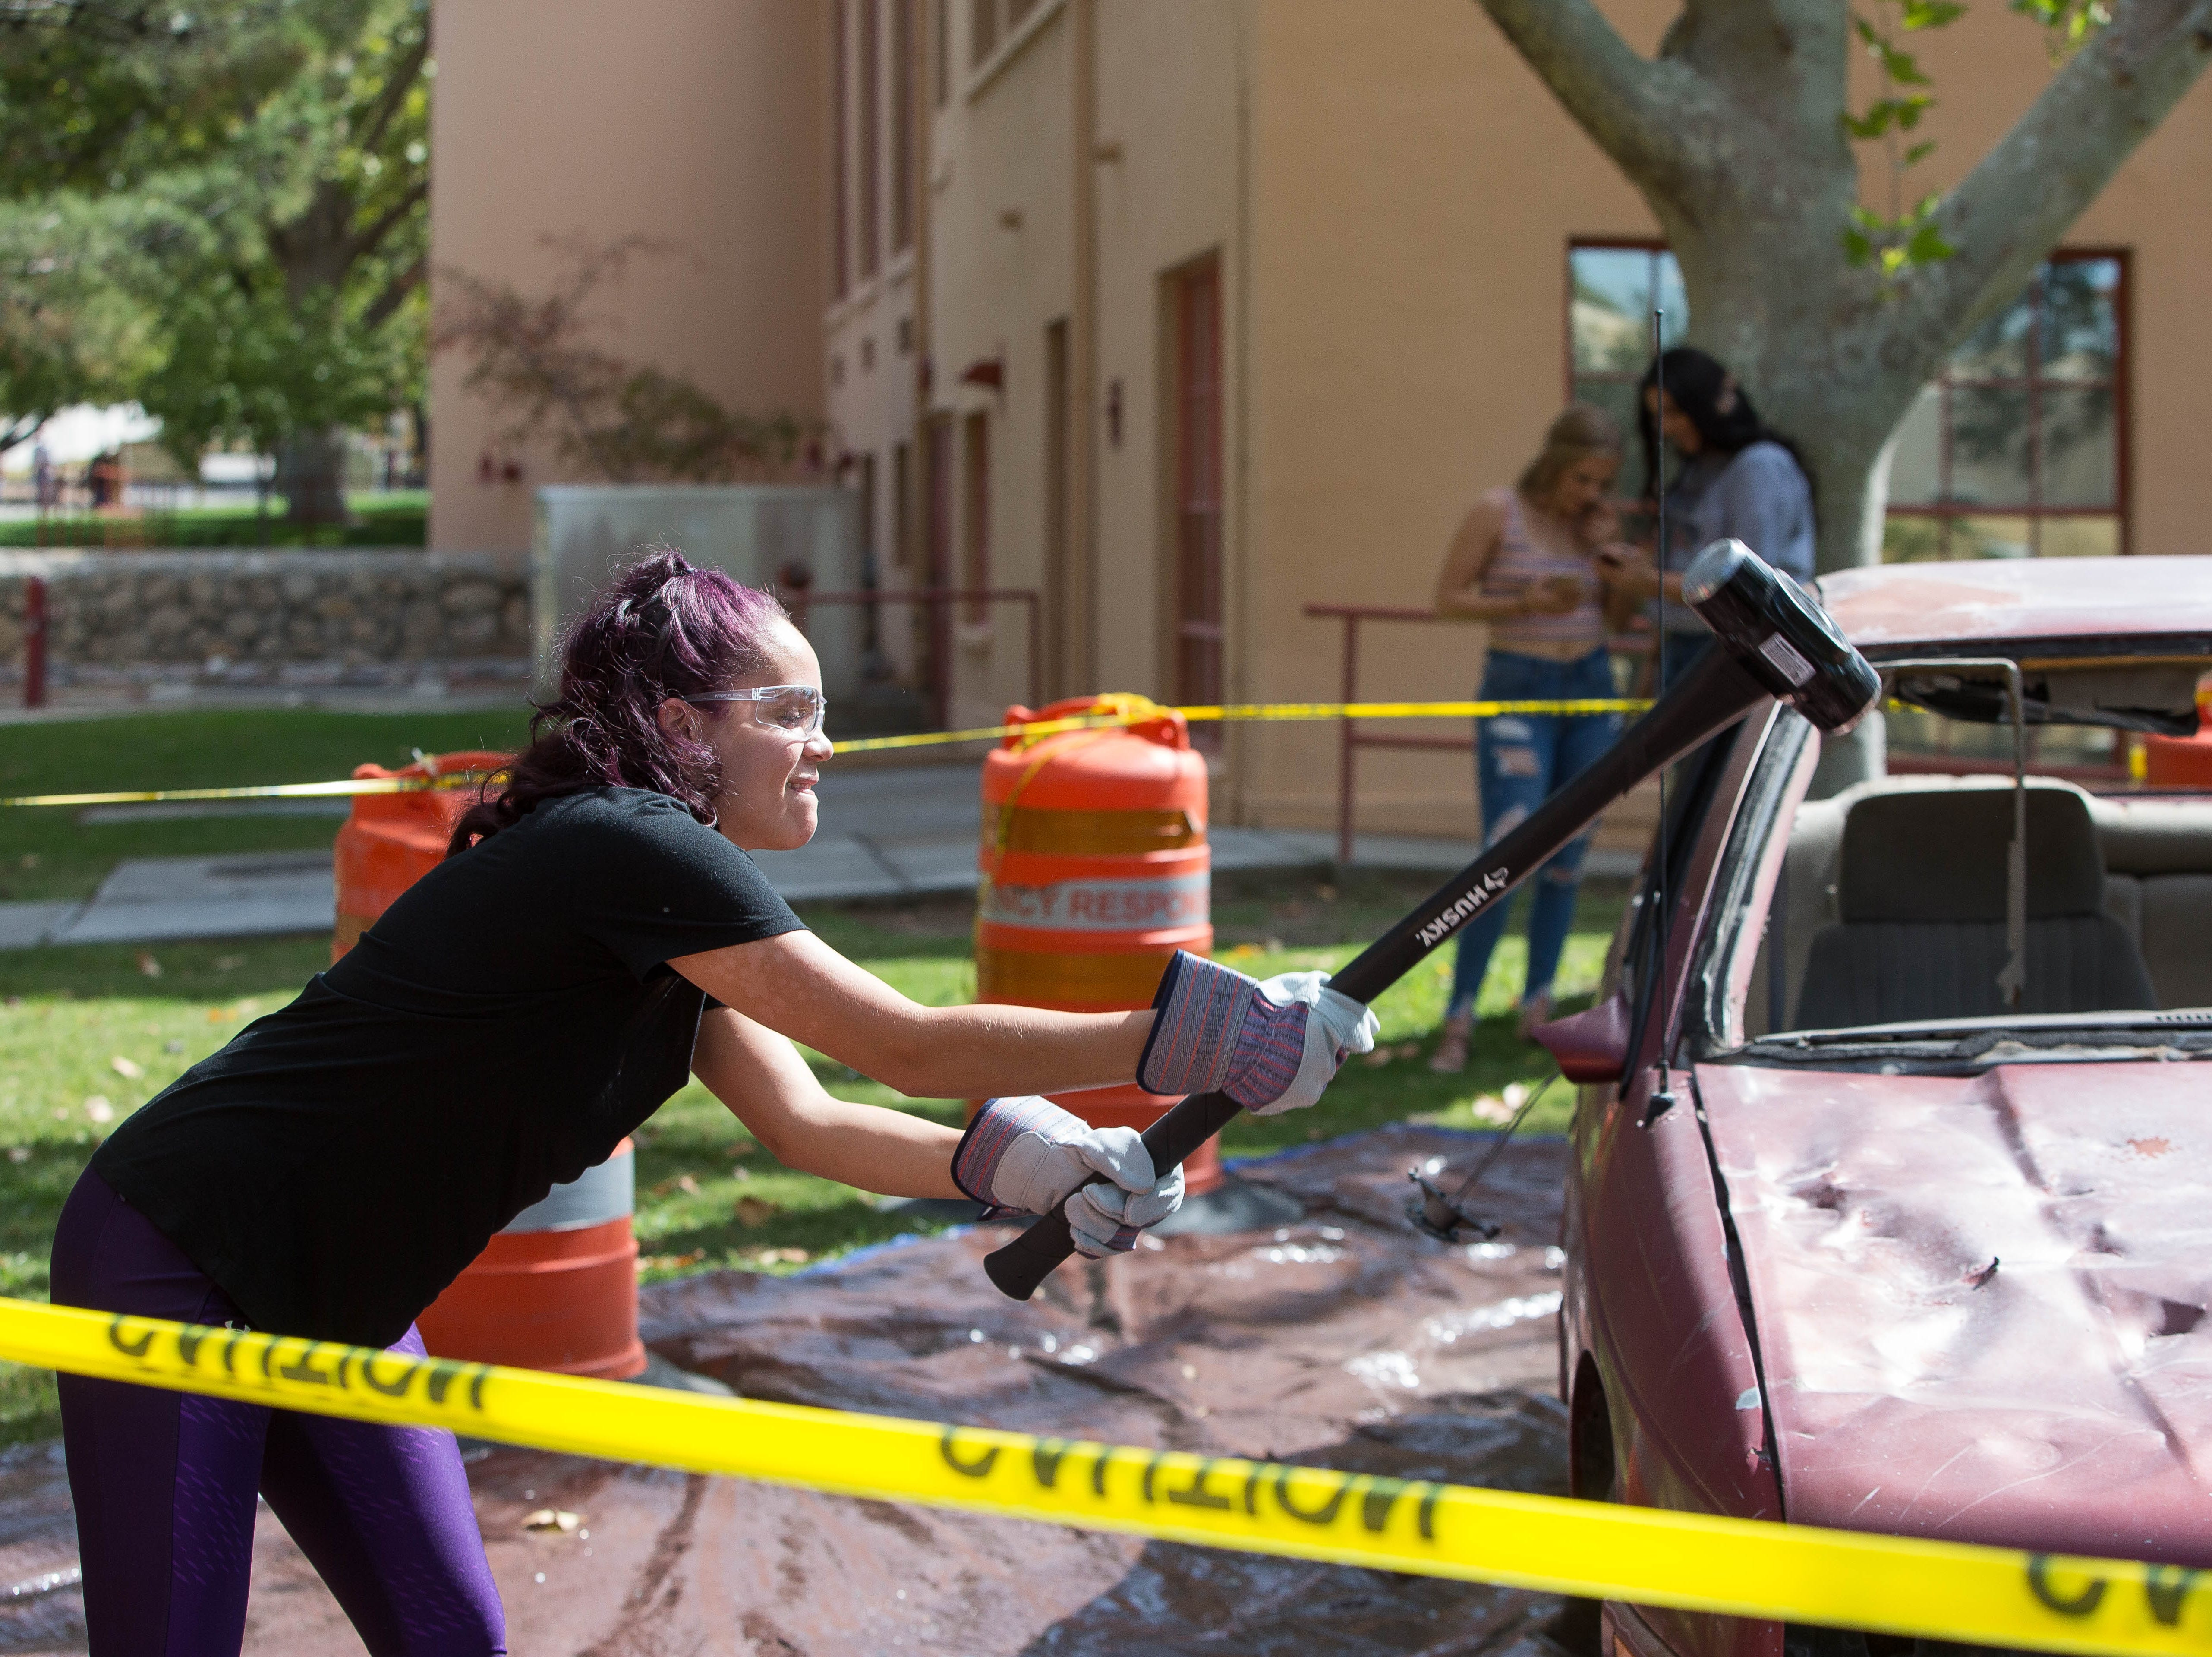 Alana Murphy, slams a sledgehammer into the hood of a car placed behind Milton Hall at New Mexico State University, Tuesday October 2, 2018. The opportunity to take out any stress on a car was set up as a fundraiser for the Aggie Cupboard. Students could pay with school supplies or 25 cents for one hit or $1 for four hits with a sledgehammer on the car.